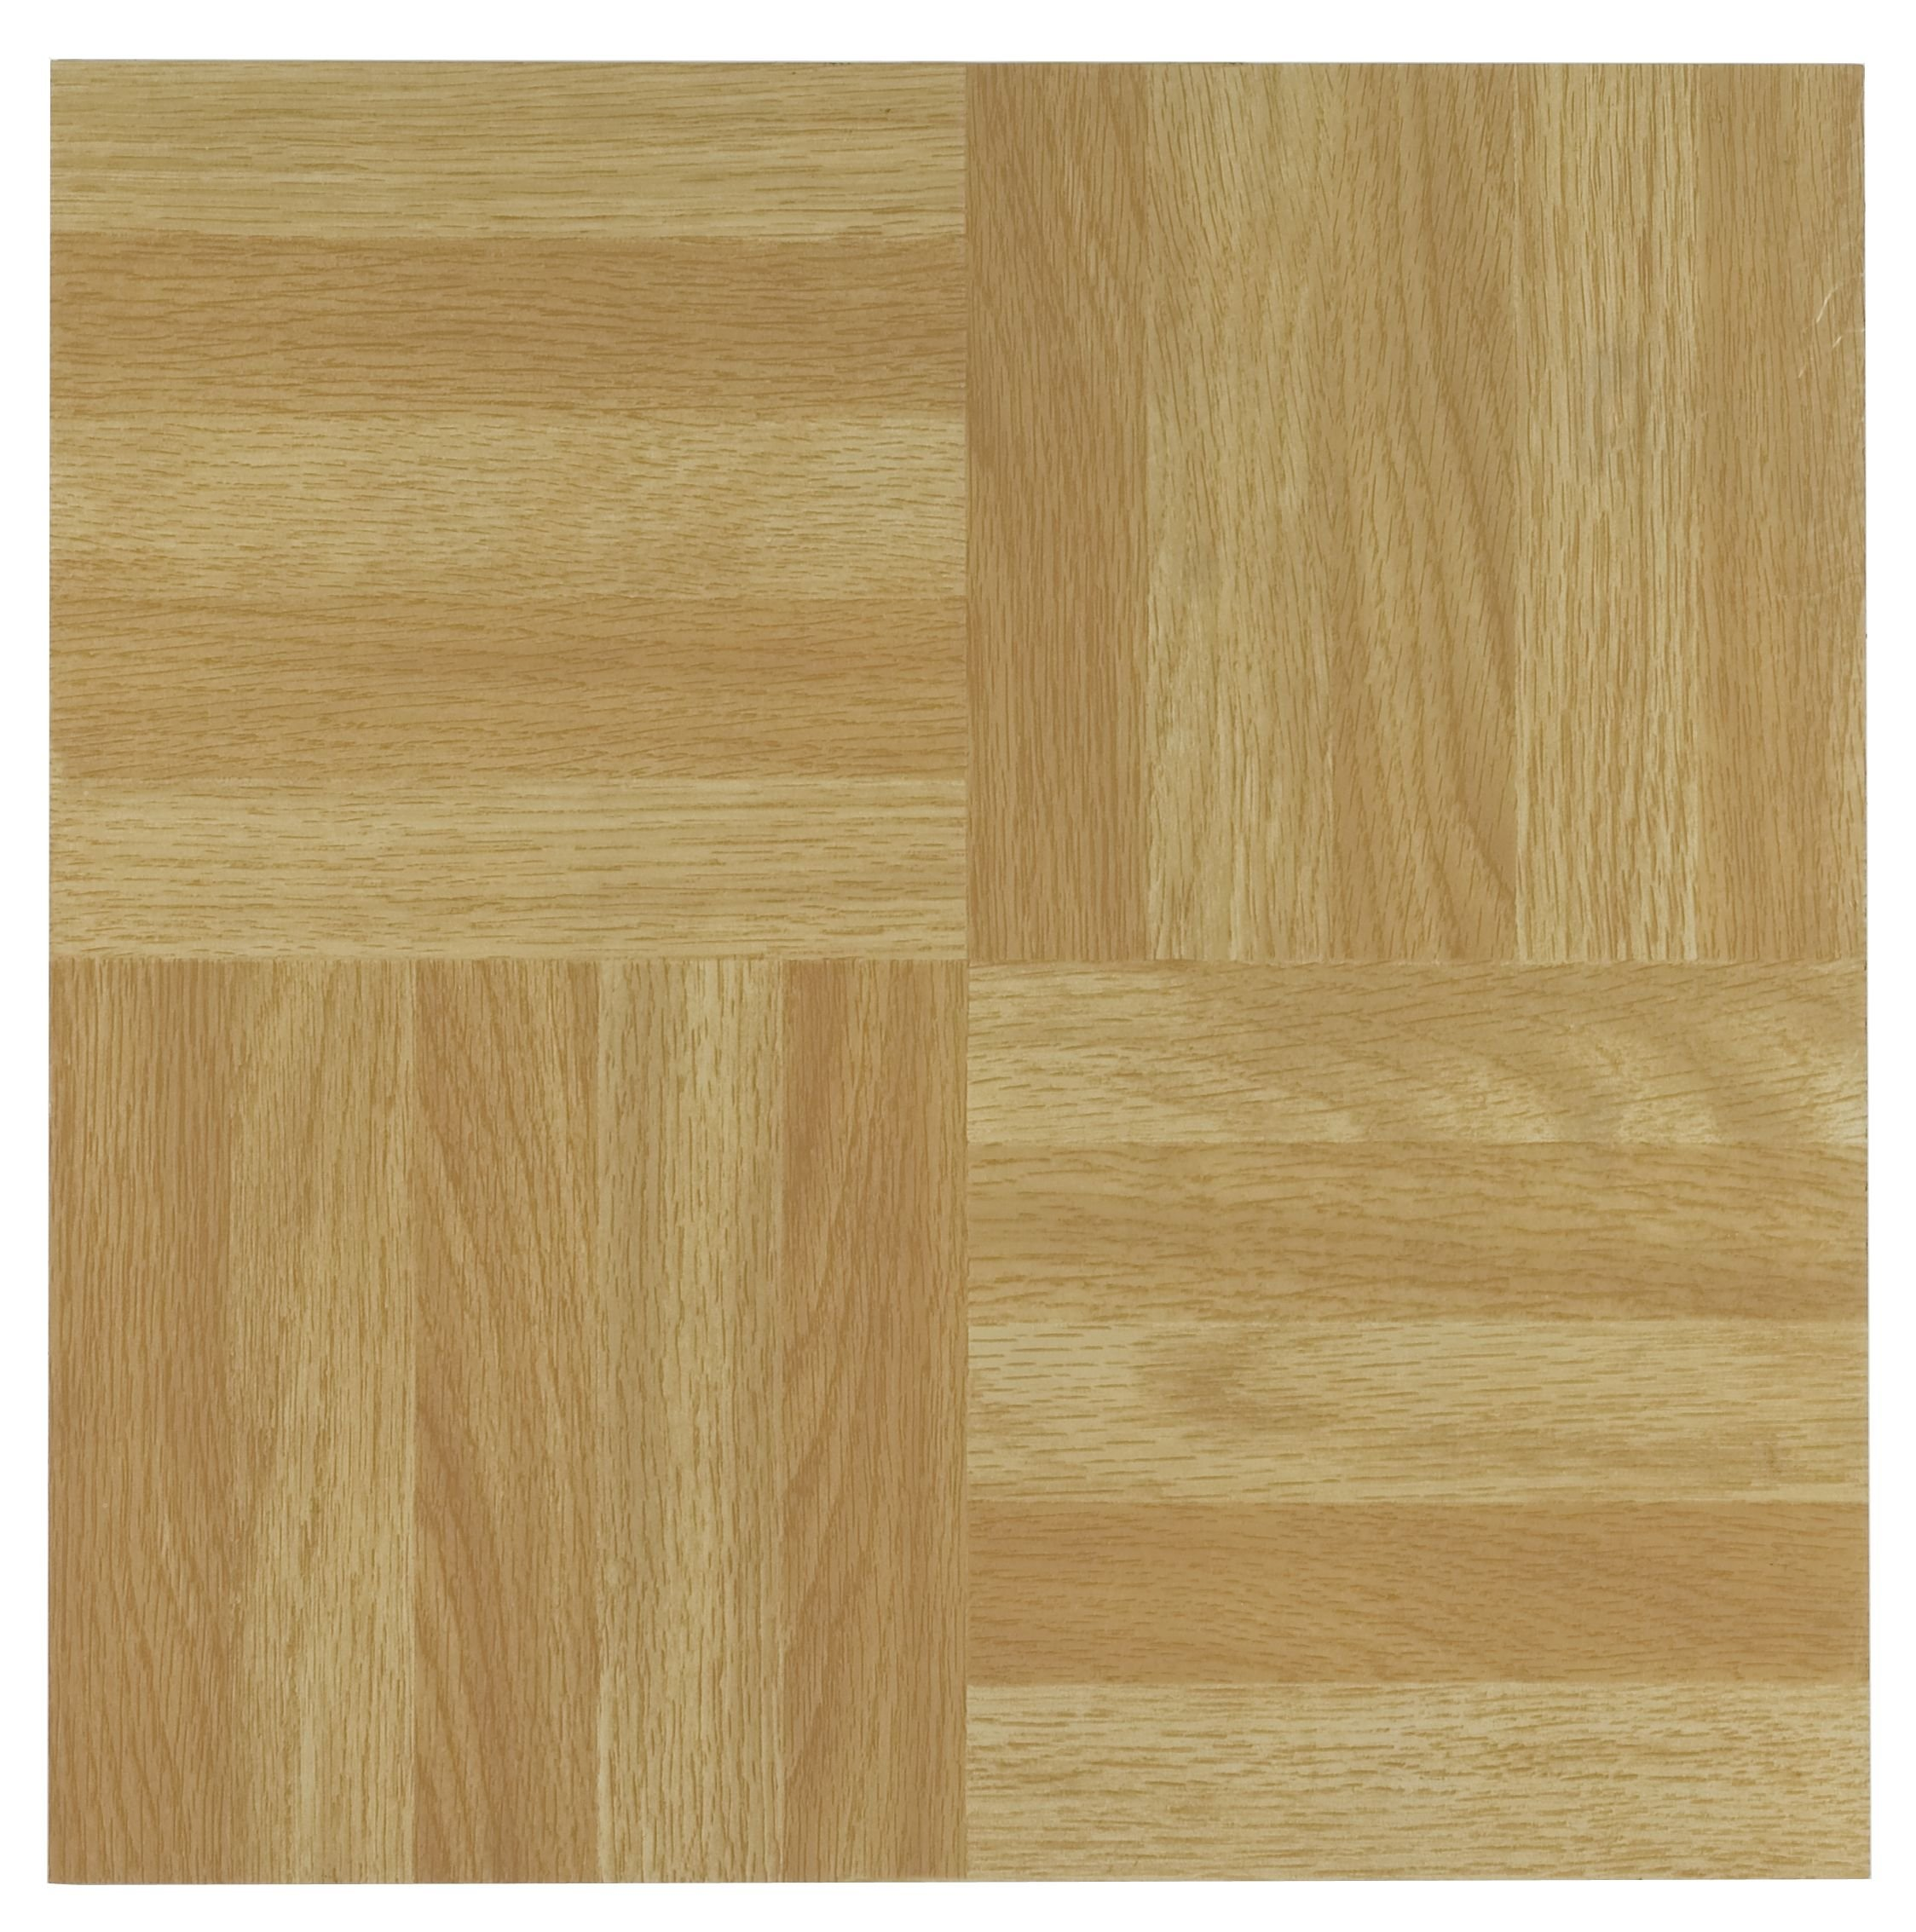 Achim Home Furnishings FTVWD20420 Nexus 12-Inch Vinyl Tile, Wood Four Finger Square Parquet, 20-Pack